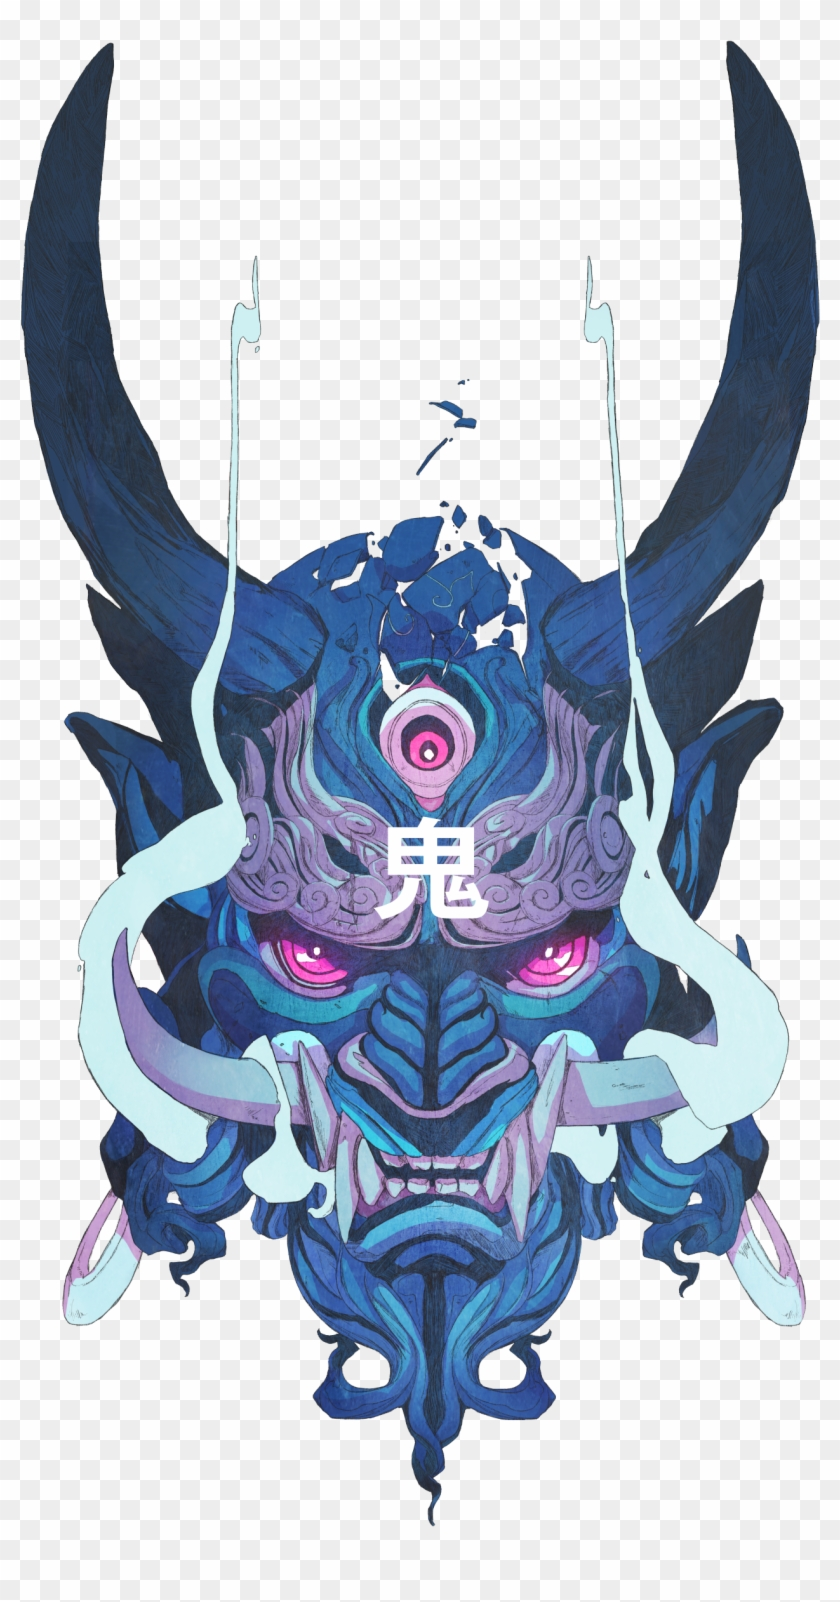 Oni Demon Png - Demon Japanese Mask, HD Png Download - 2602x2926(#5895777) - PngFind